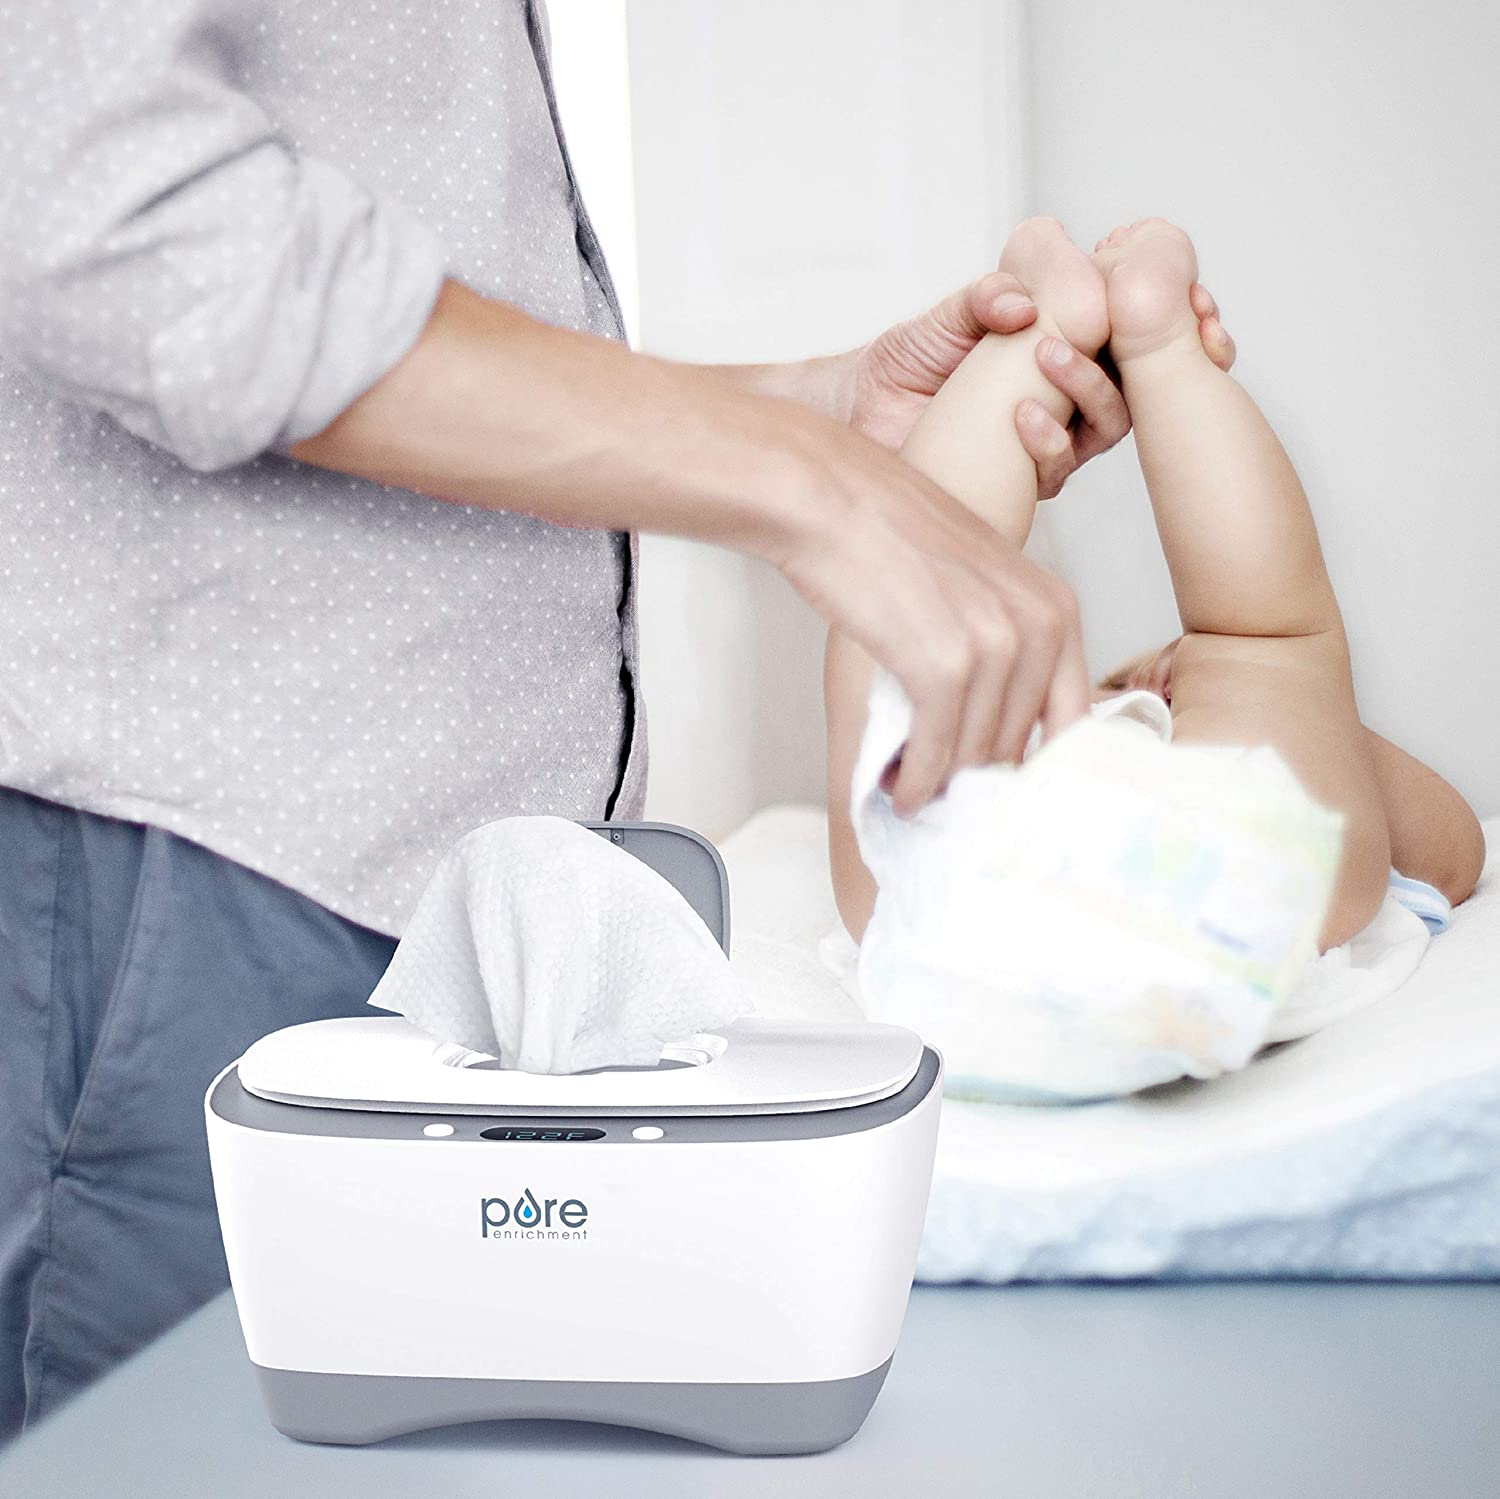 Easy-Feed Dispenser with 3 Heat Settings LCD Display Pure Enrichment PureBaby Wipe Warmer with Digital Display 80 Wipe Capacity Naturally Steam Heated for Maximum Comfort and Safety for Baby